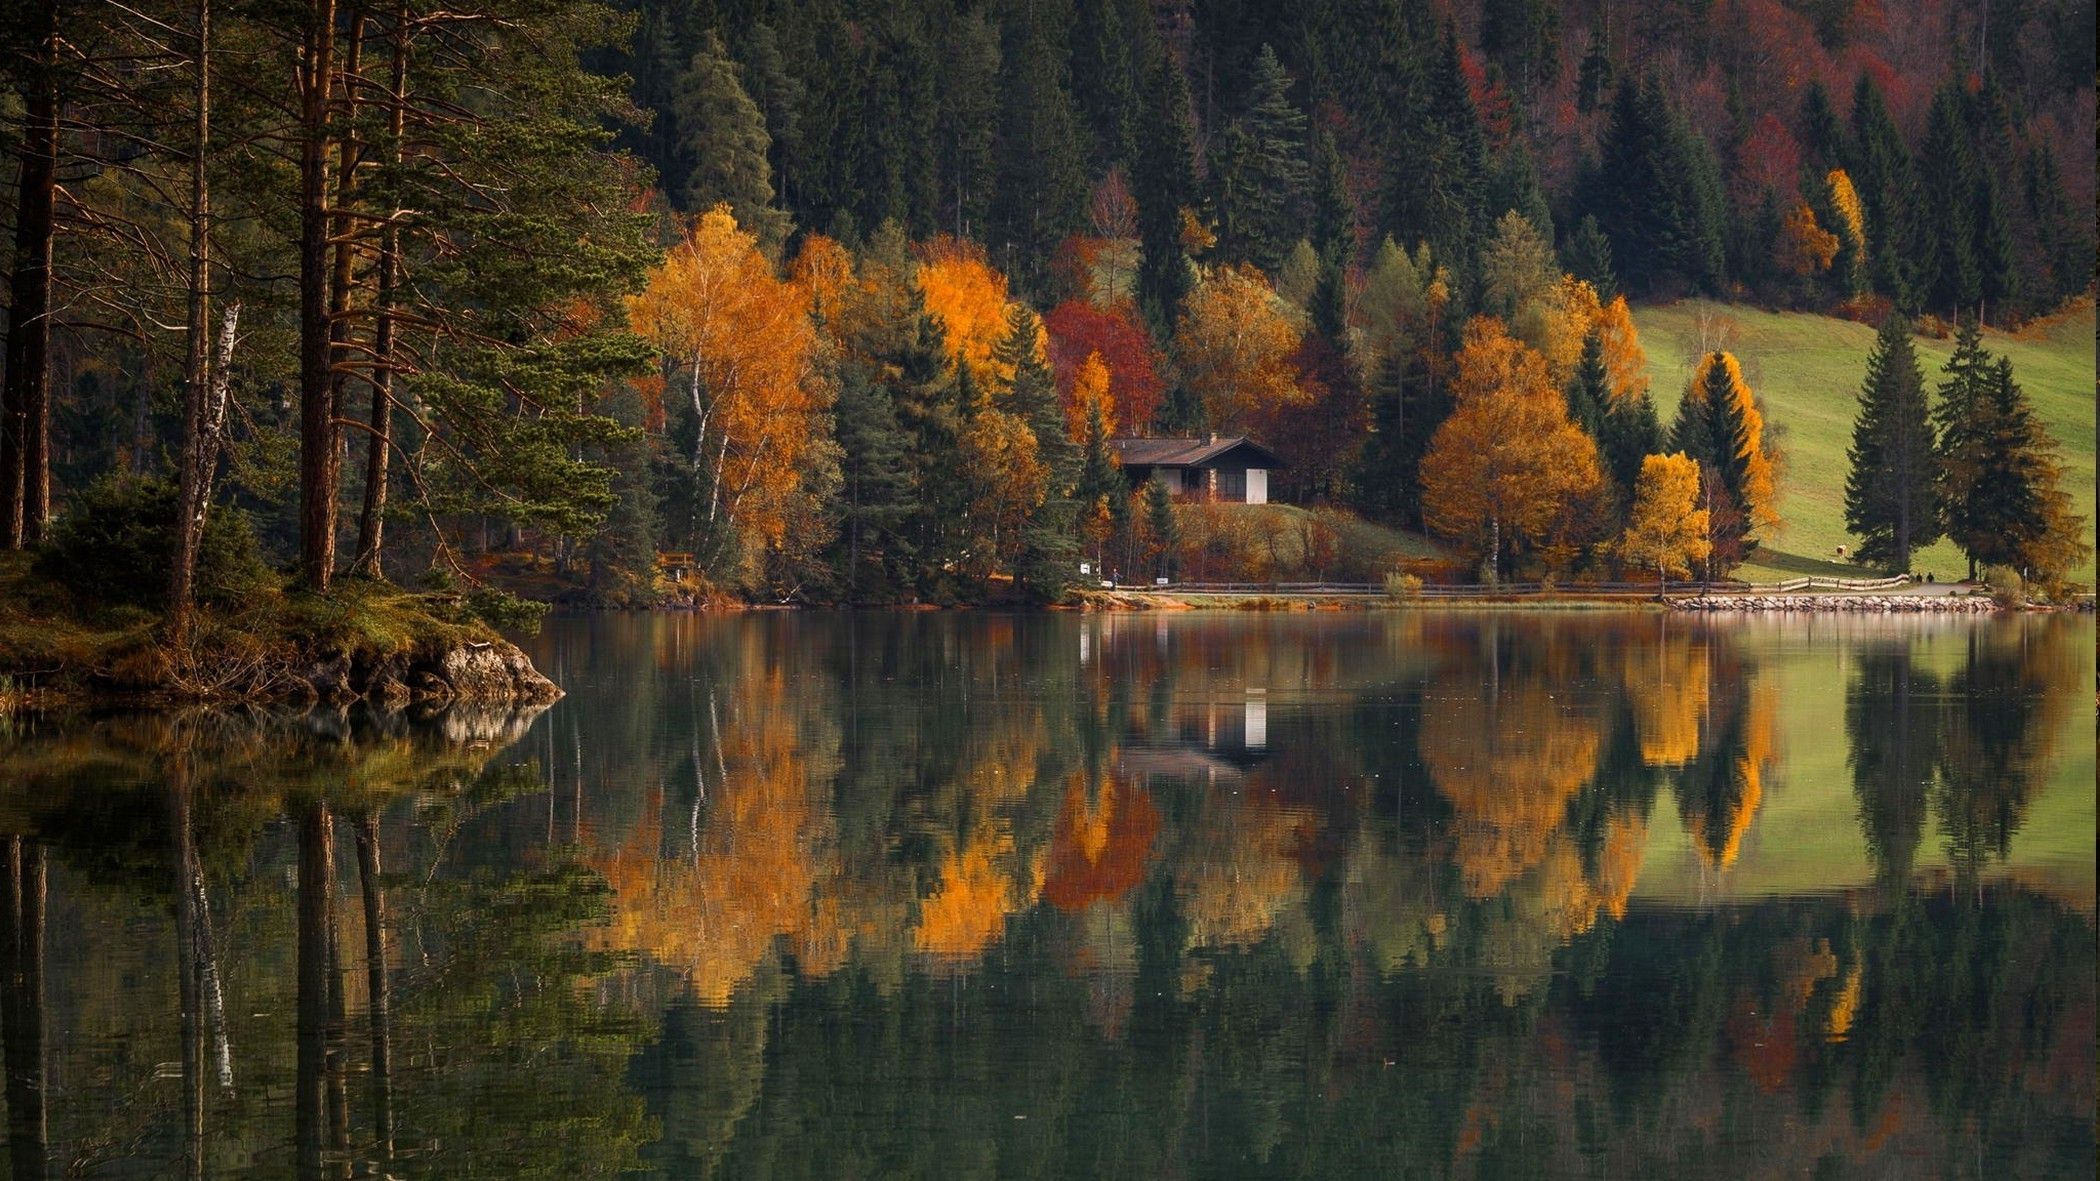 Nature Landscape Lake House Cabin Mountain Forest Fall Water Reflection Grass Trees Wallpaper Lake Landscape Forest Falls Lake House